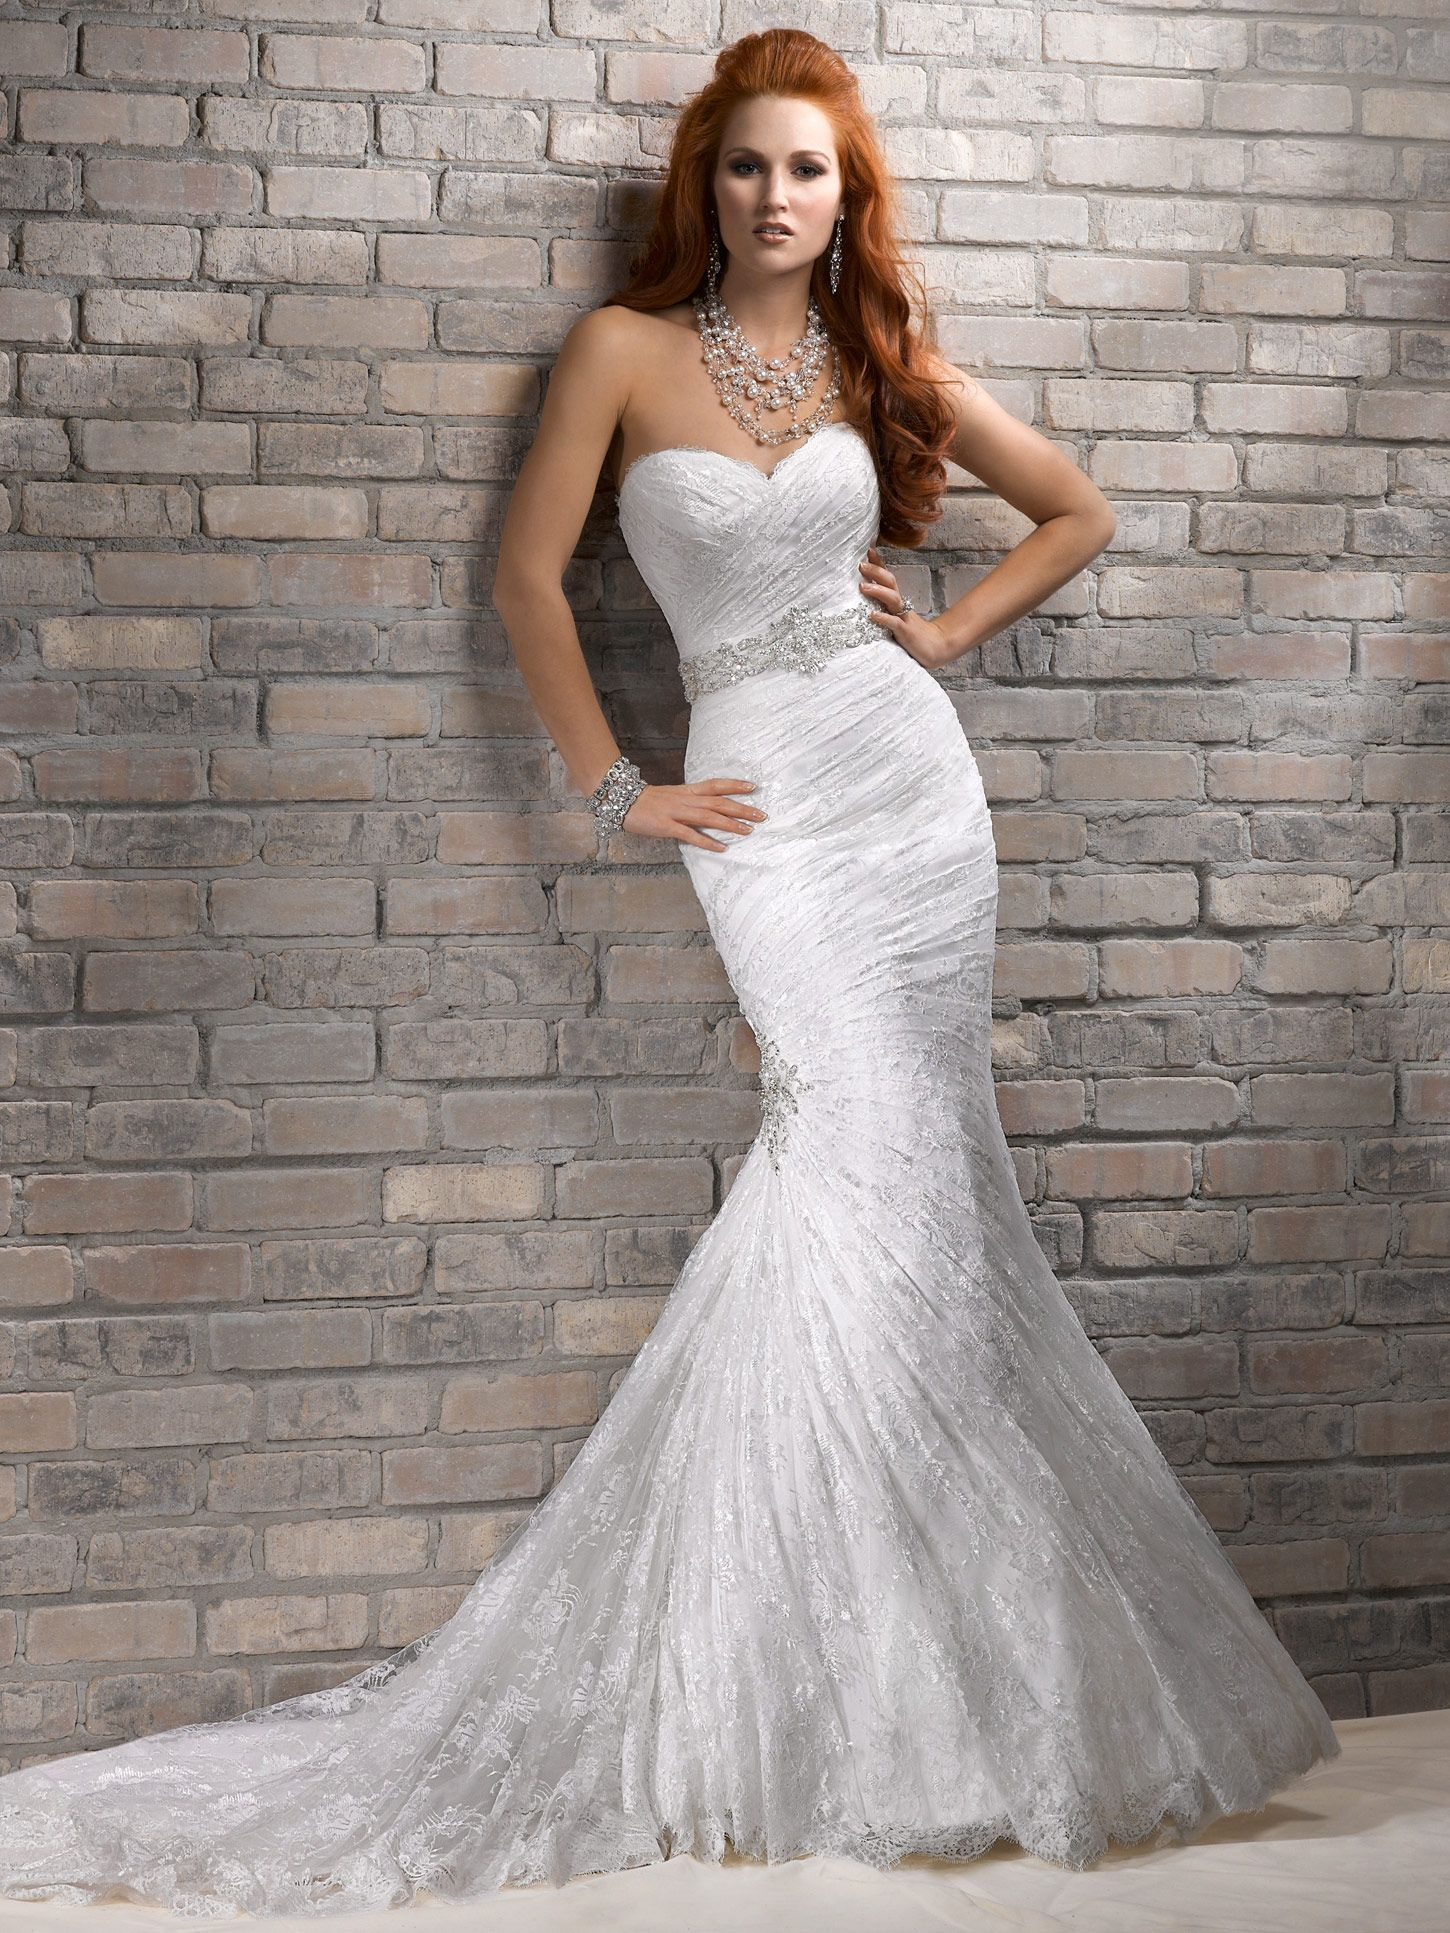 Wedding Wedding Dresses Mermaid timeless mermaid wedding dress with strapless sweetheart bodice bodice